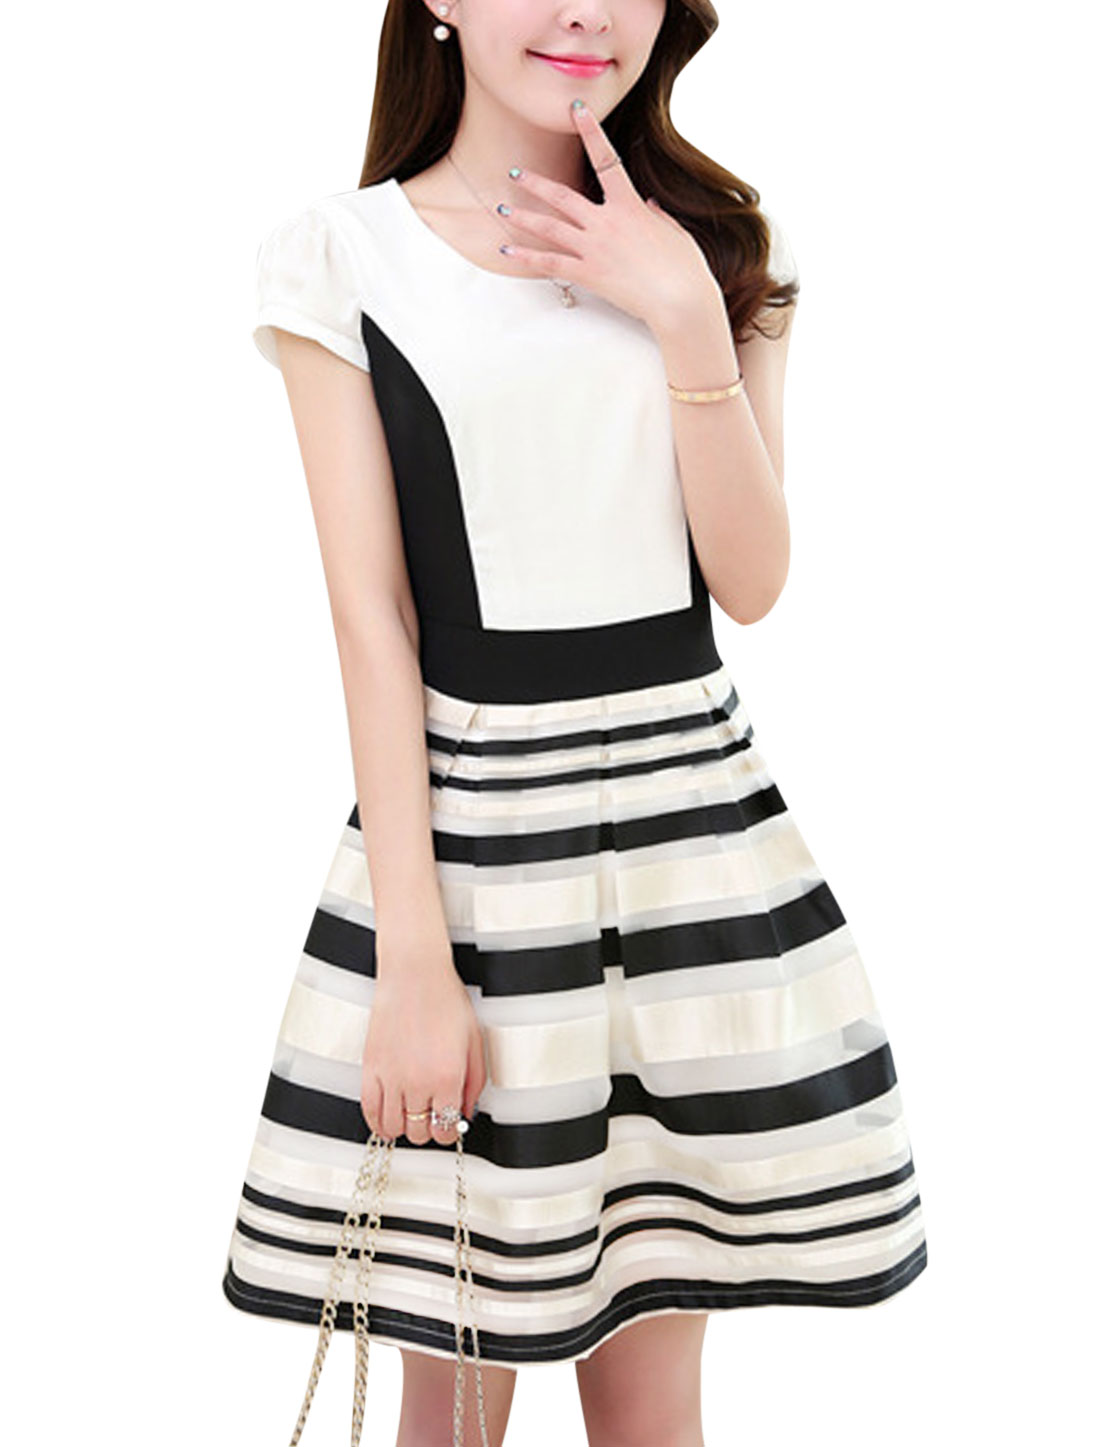 Lady Concealed Zipper Back Stripes Organza Overlay Dress Black White M